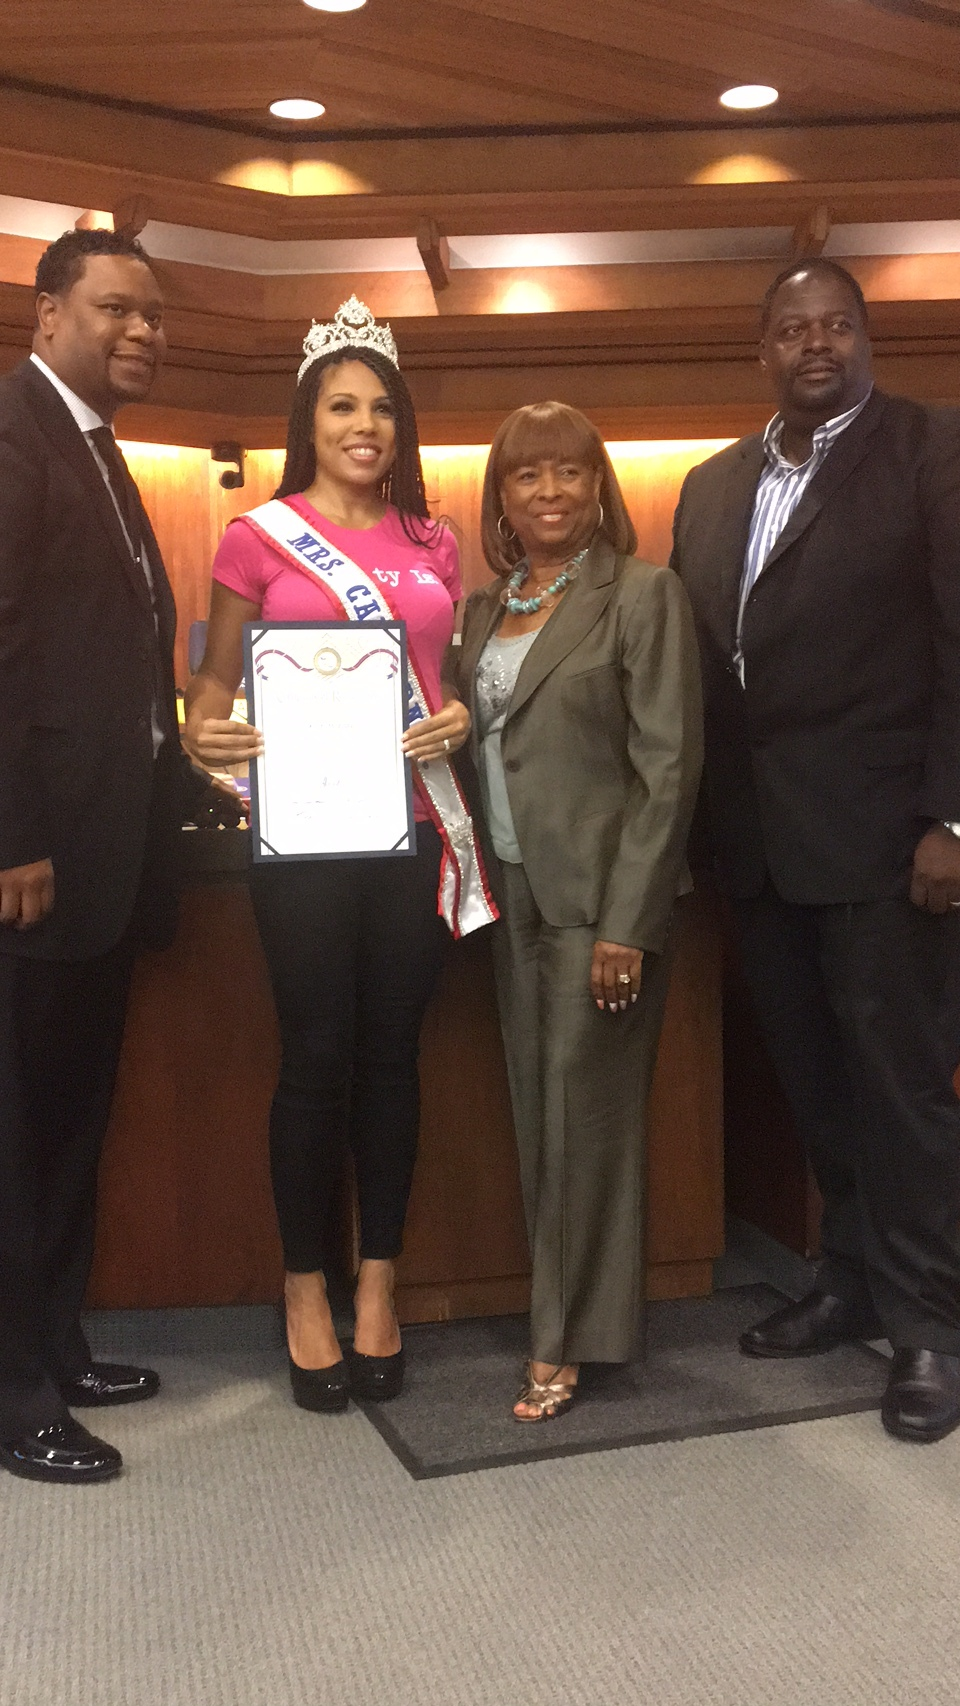 Mrs. California 2017 honored by the Carson City Council.